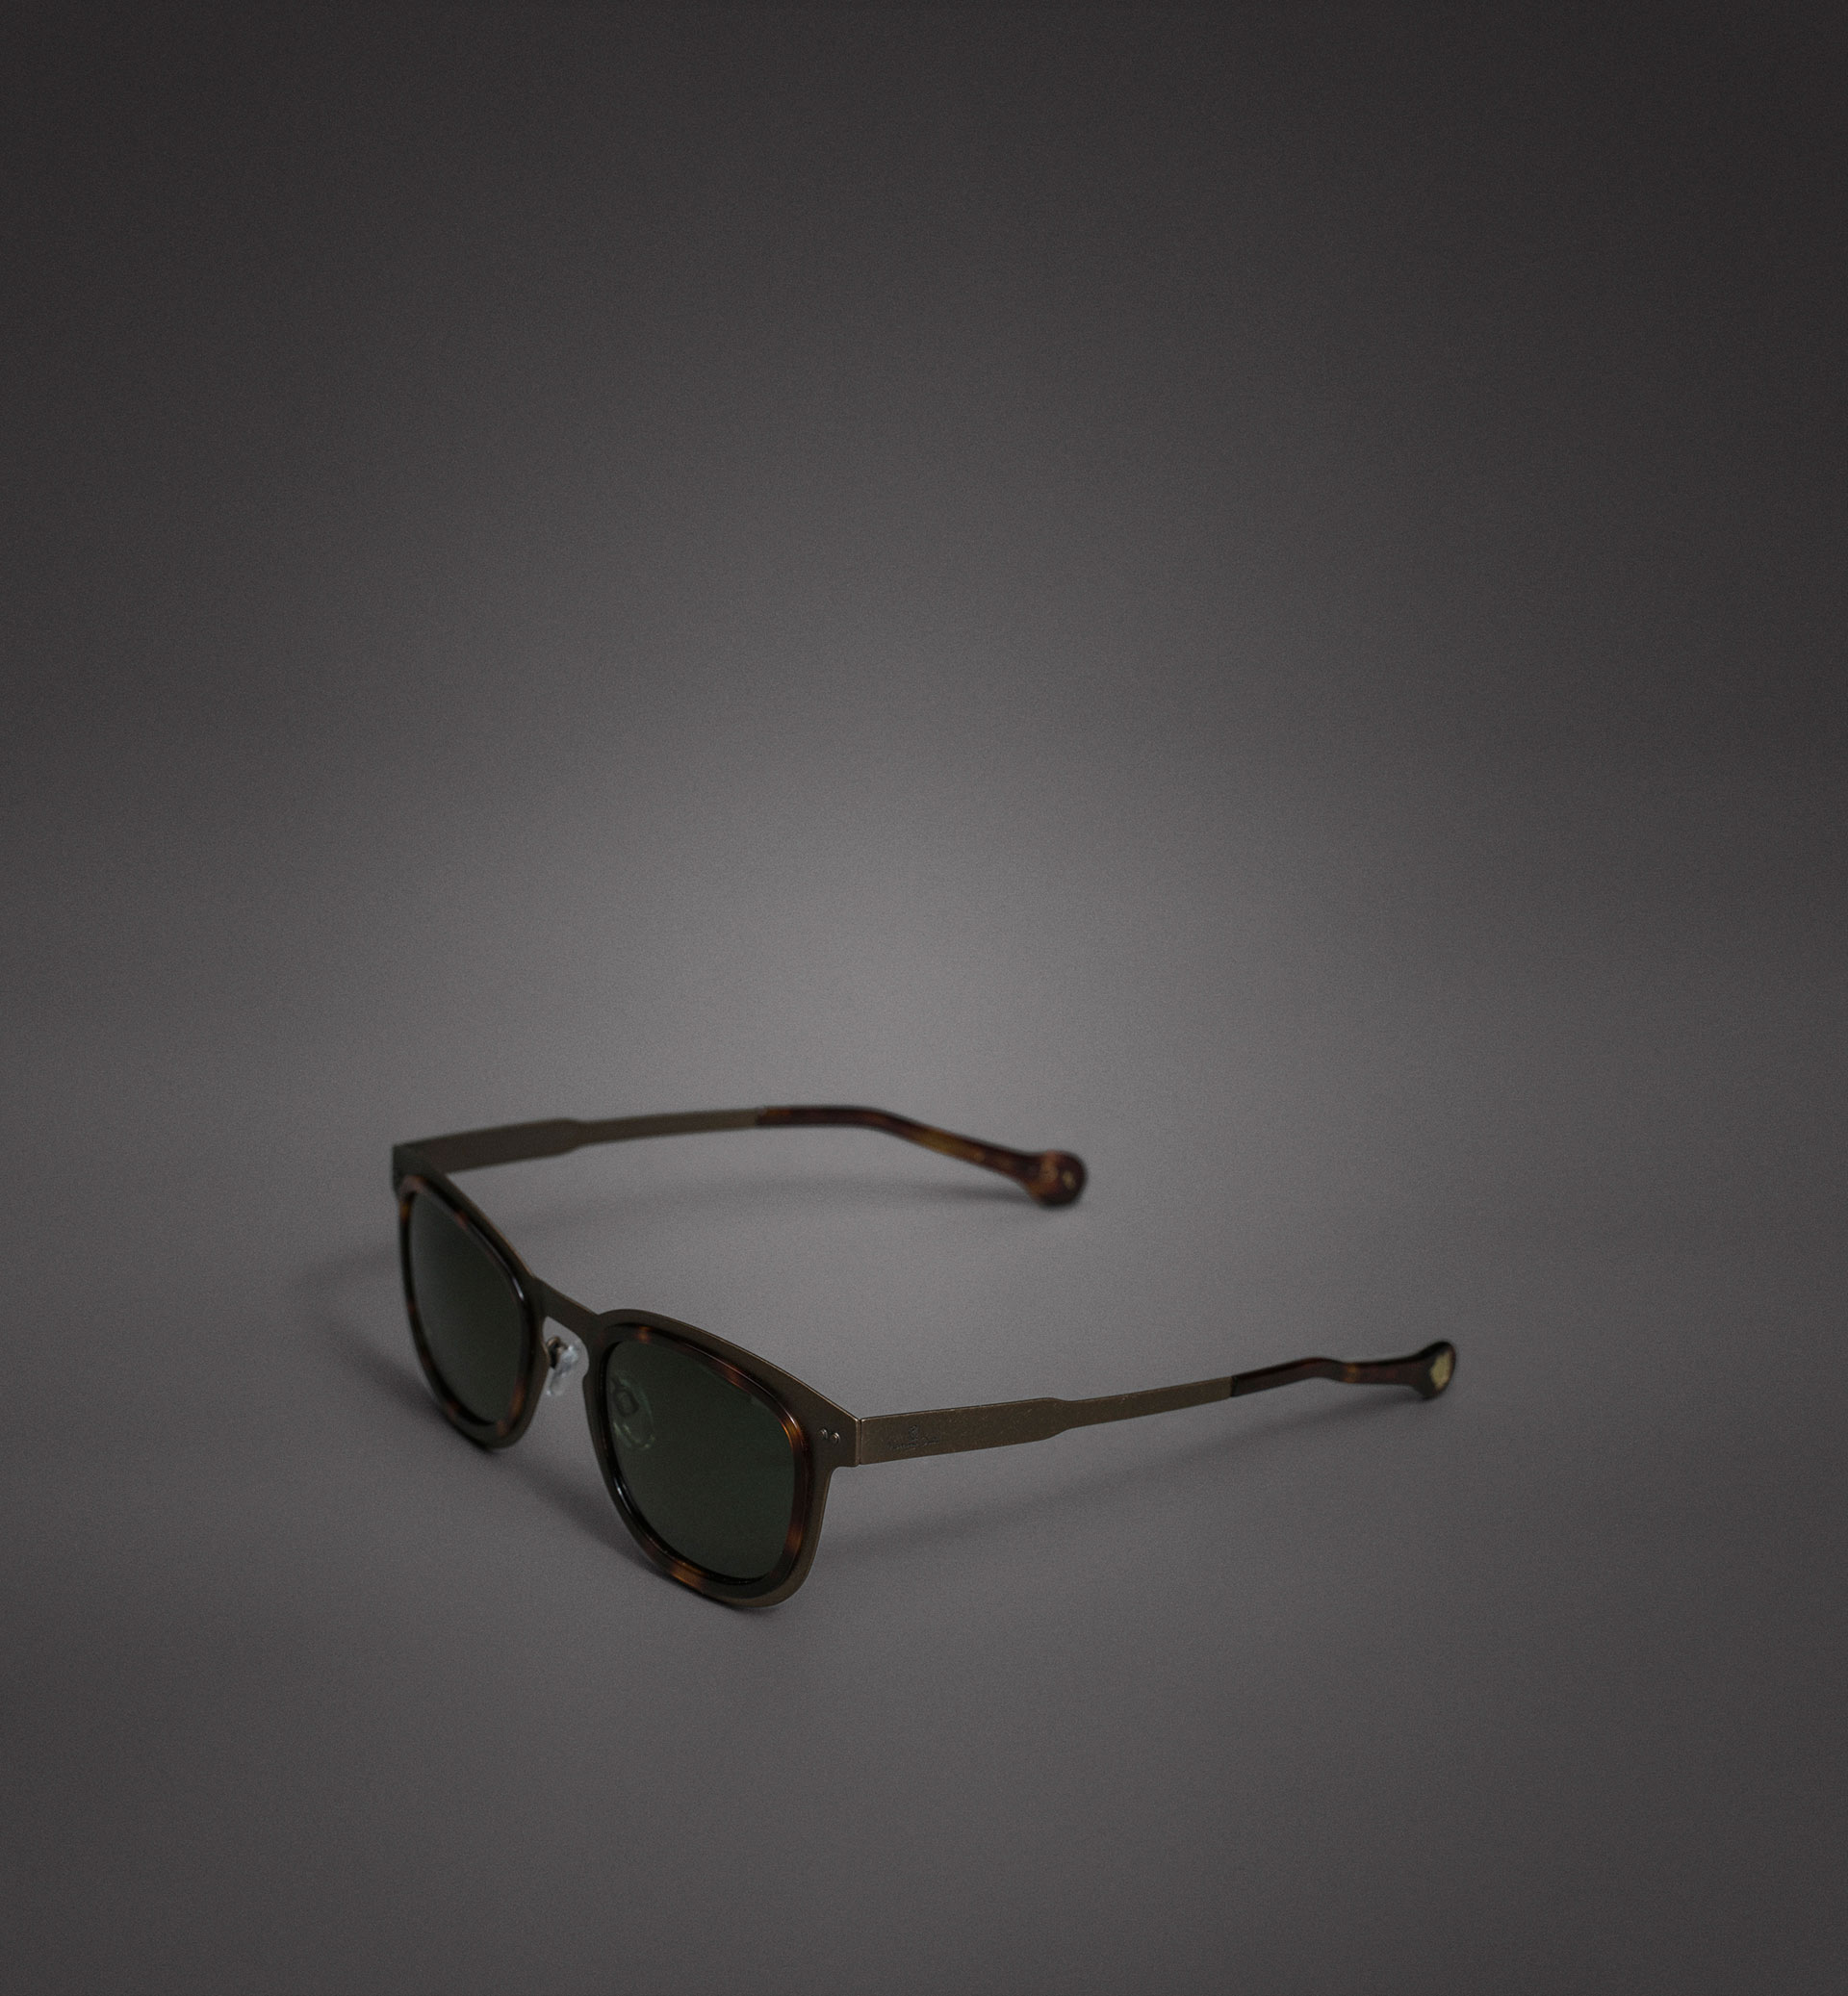 GAFAS TITANIO Y CAREY LIMITED EDITION